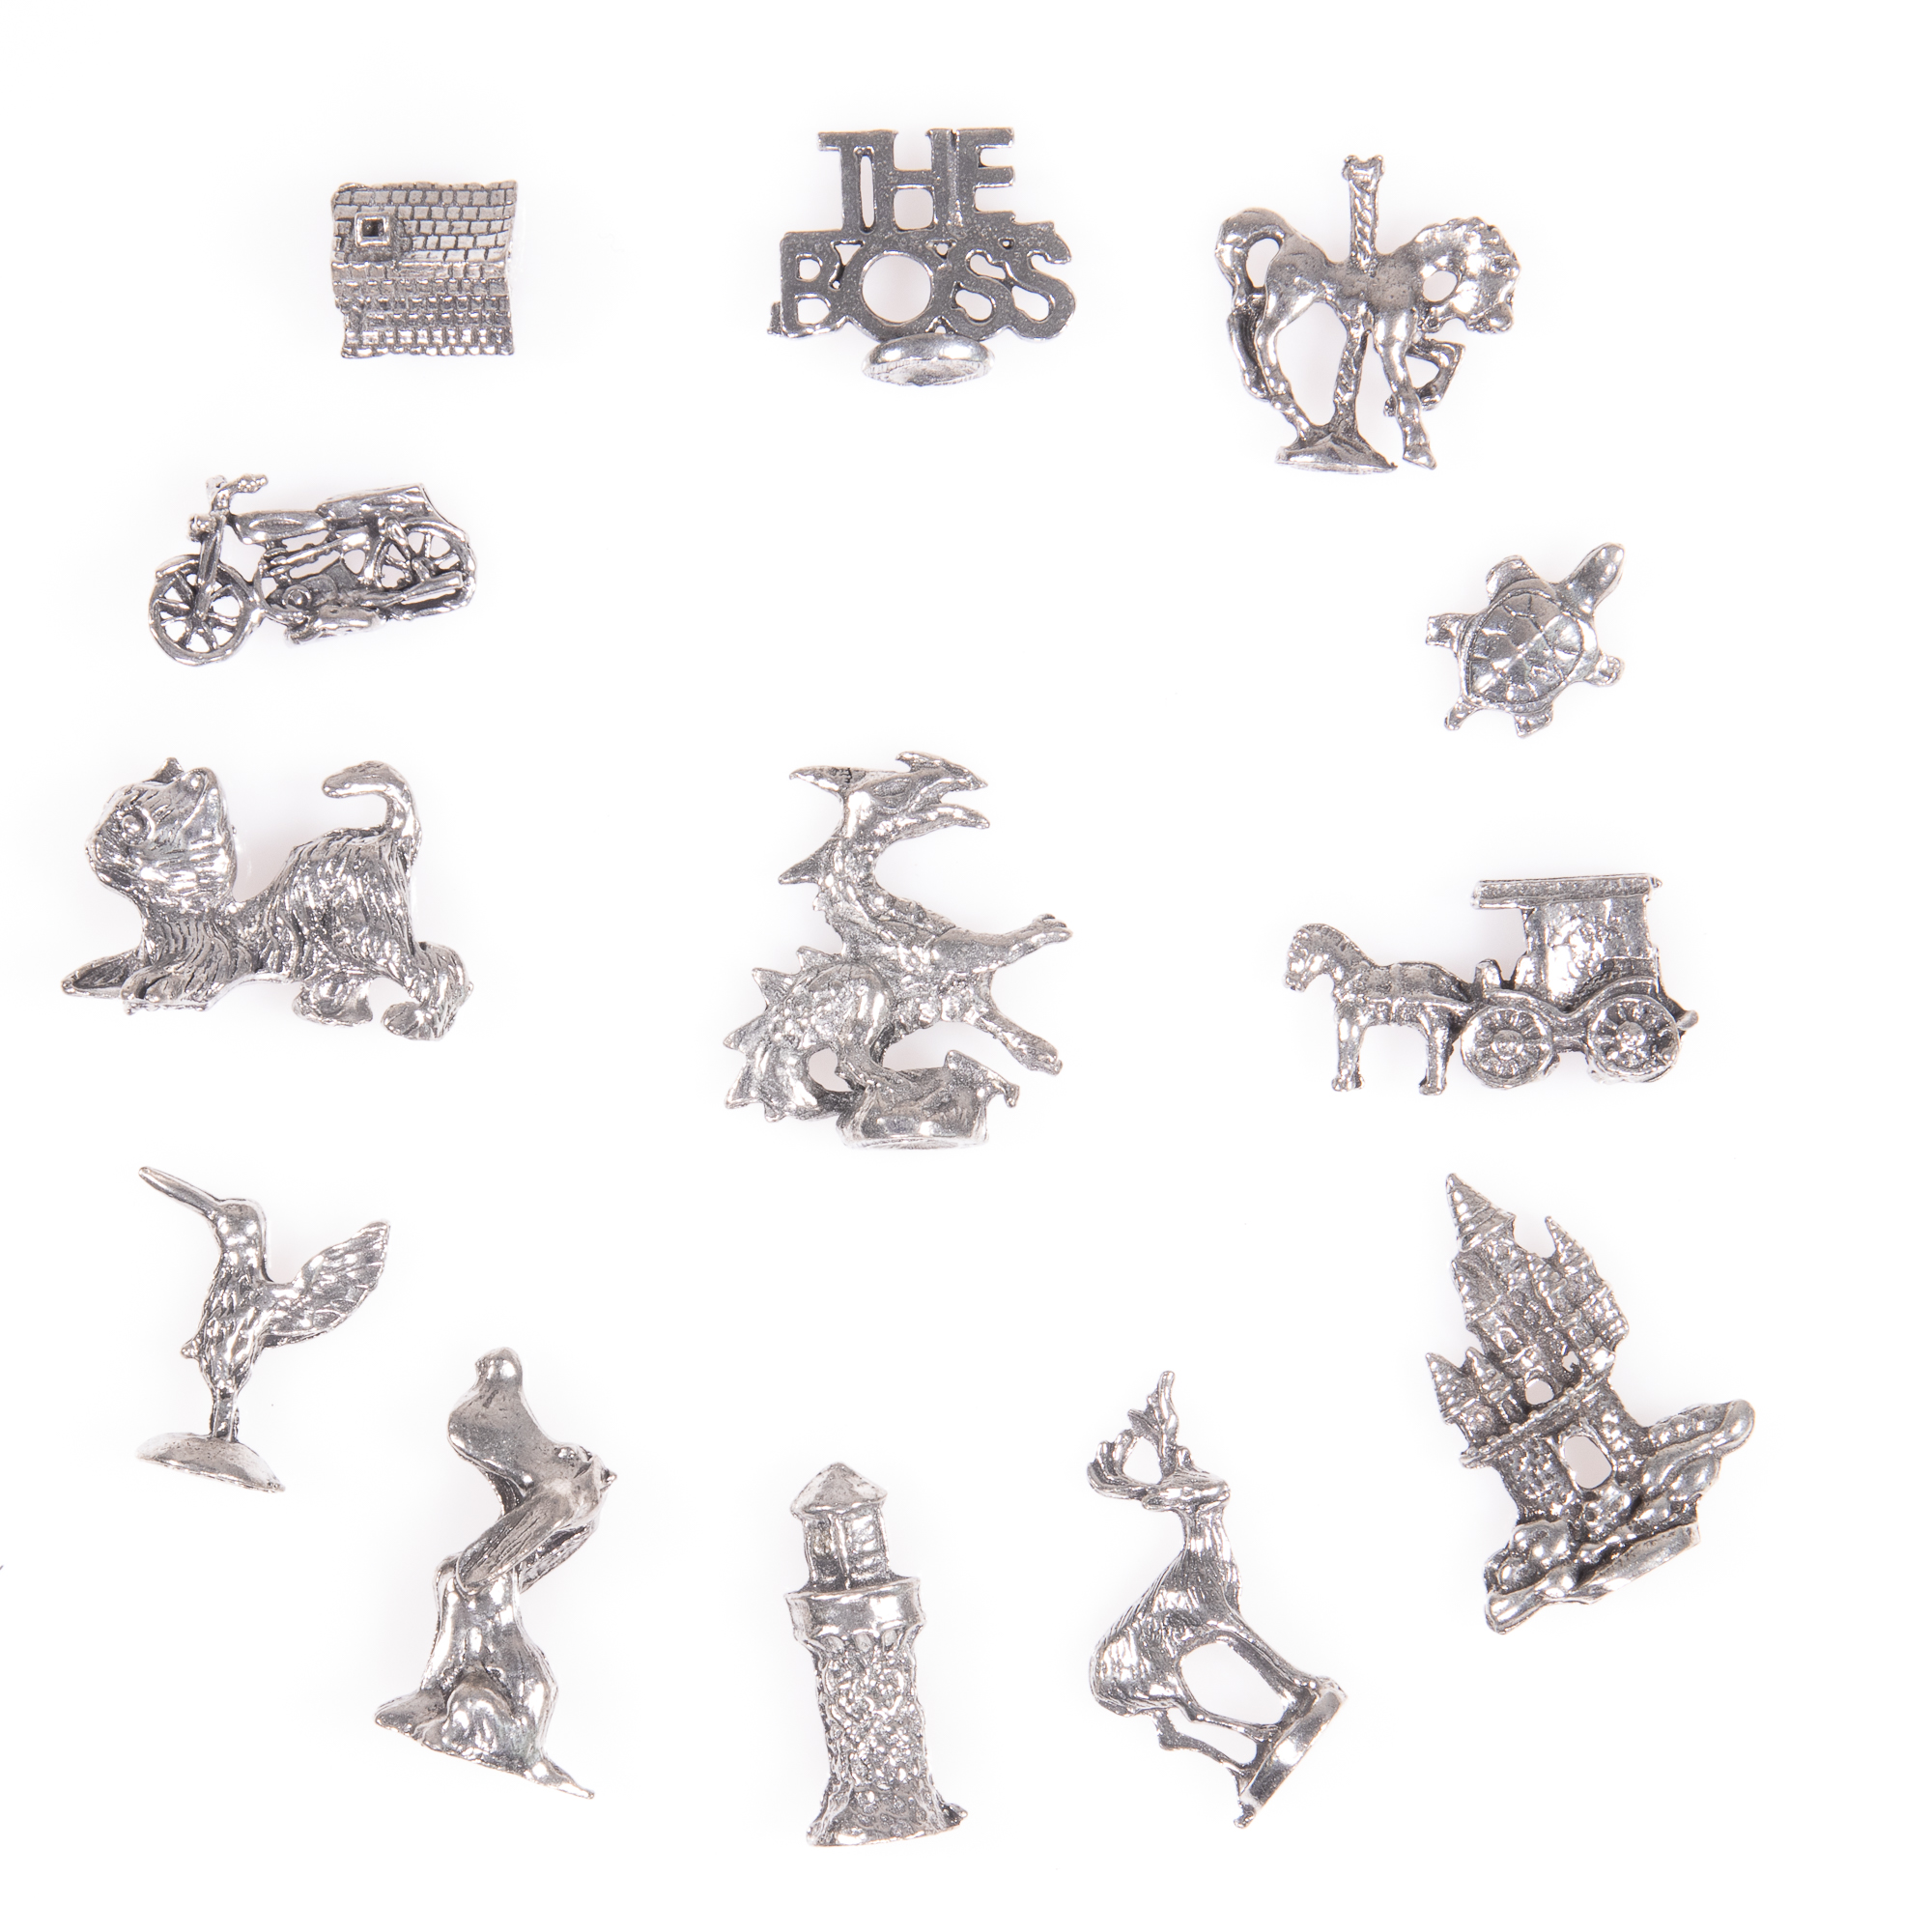 Selection of 13x Silver Novelty Charms